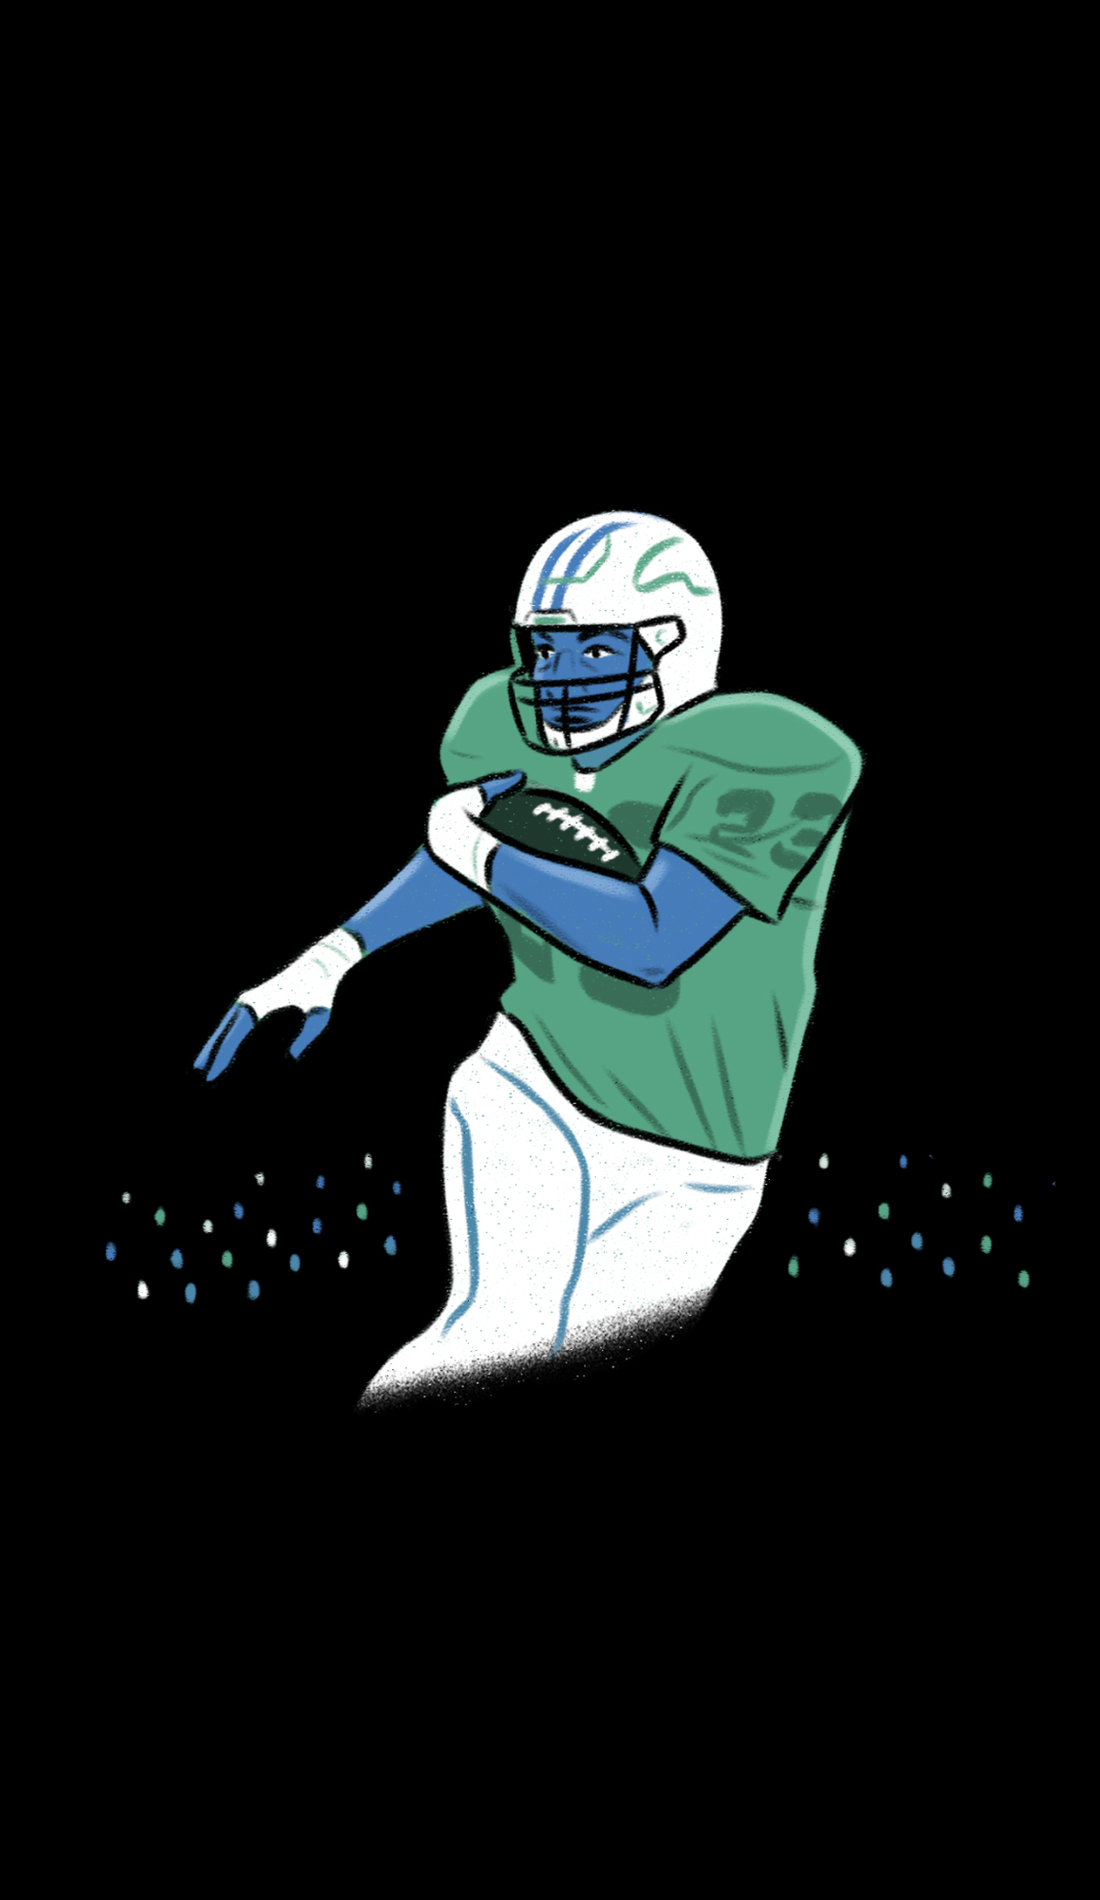 A Southern Miss Golden Eagles Football live event